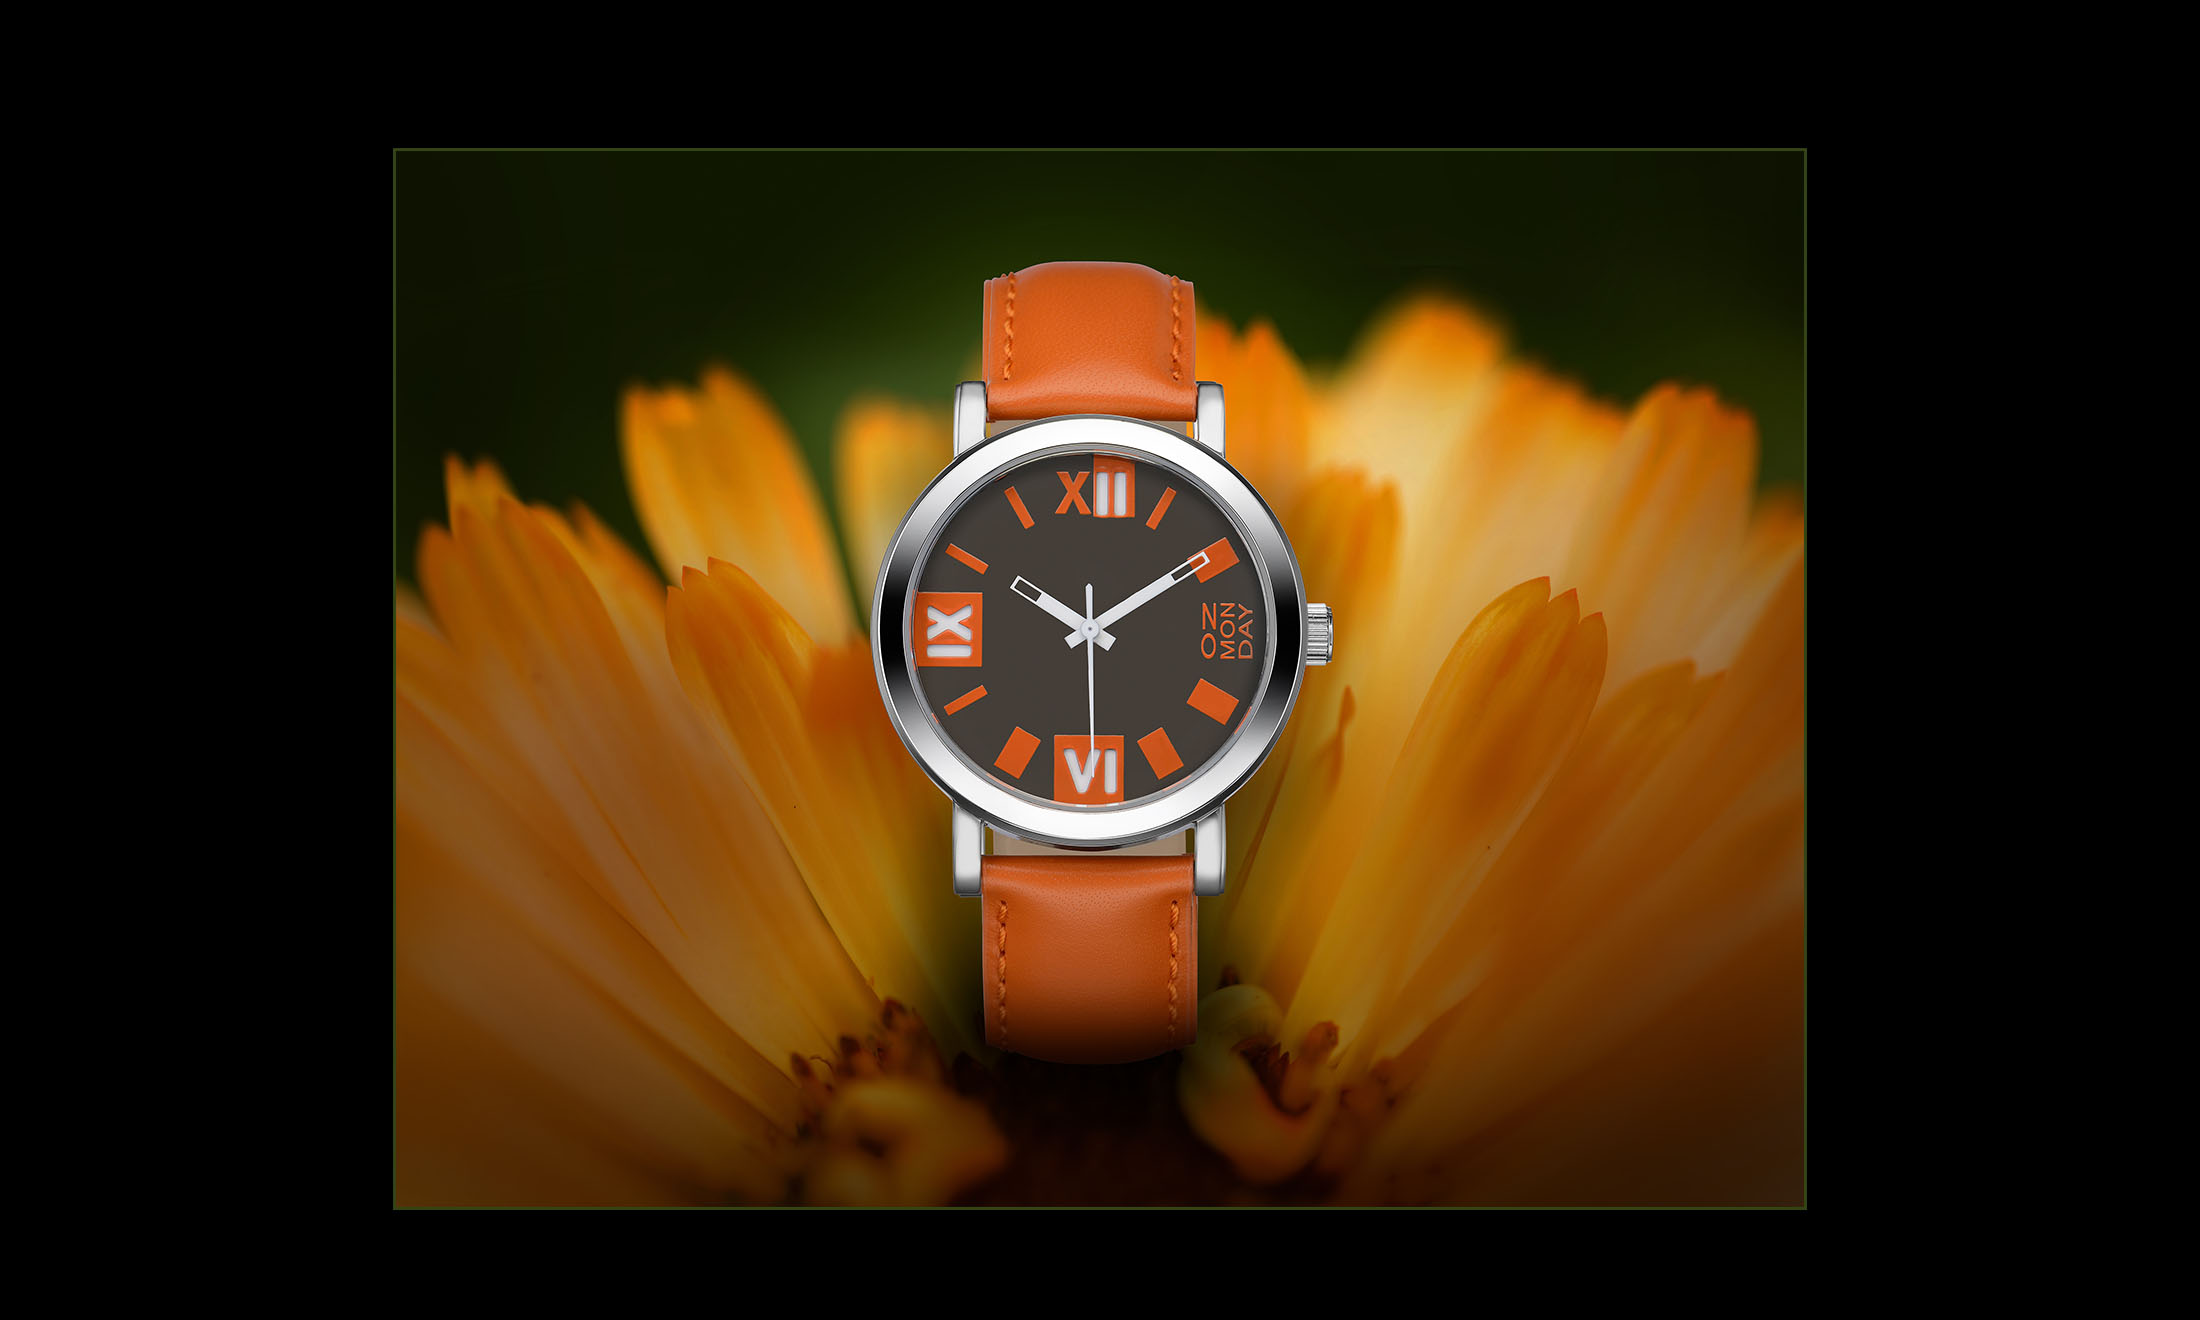 watch in orange